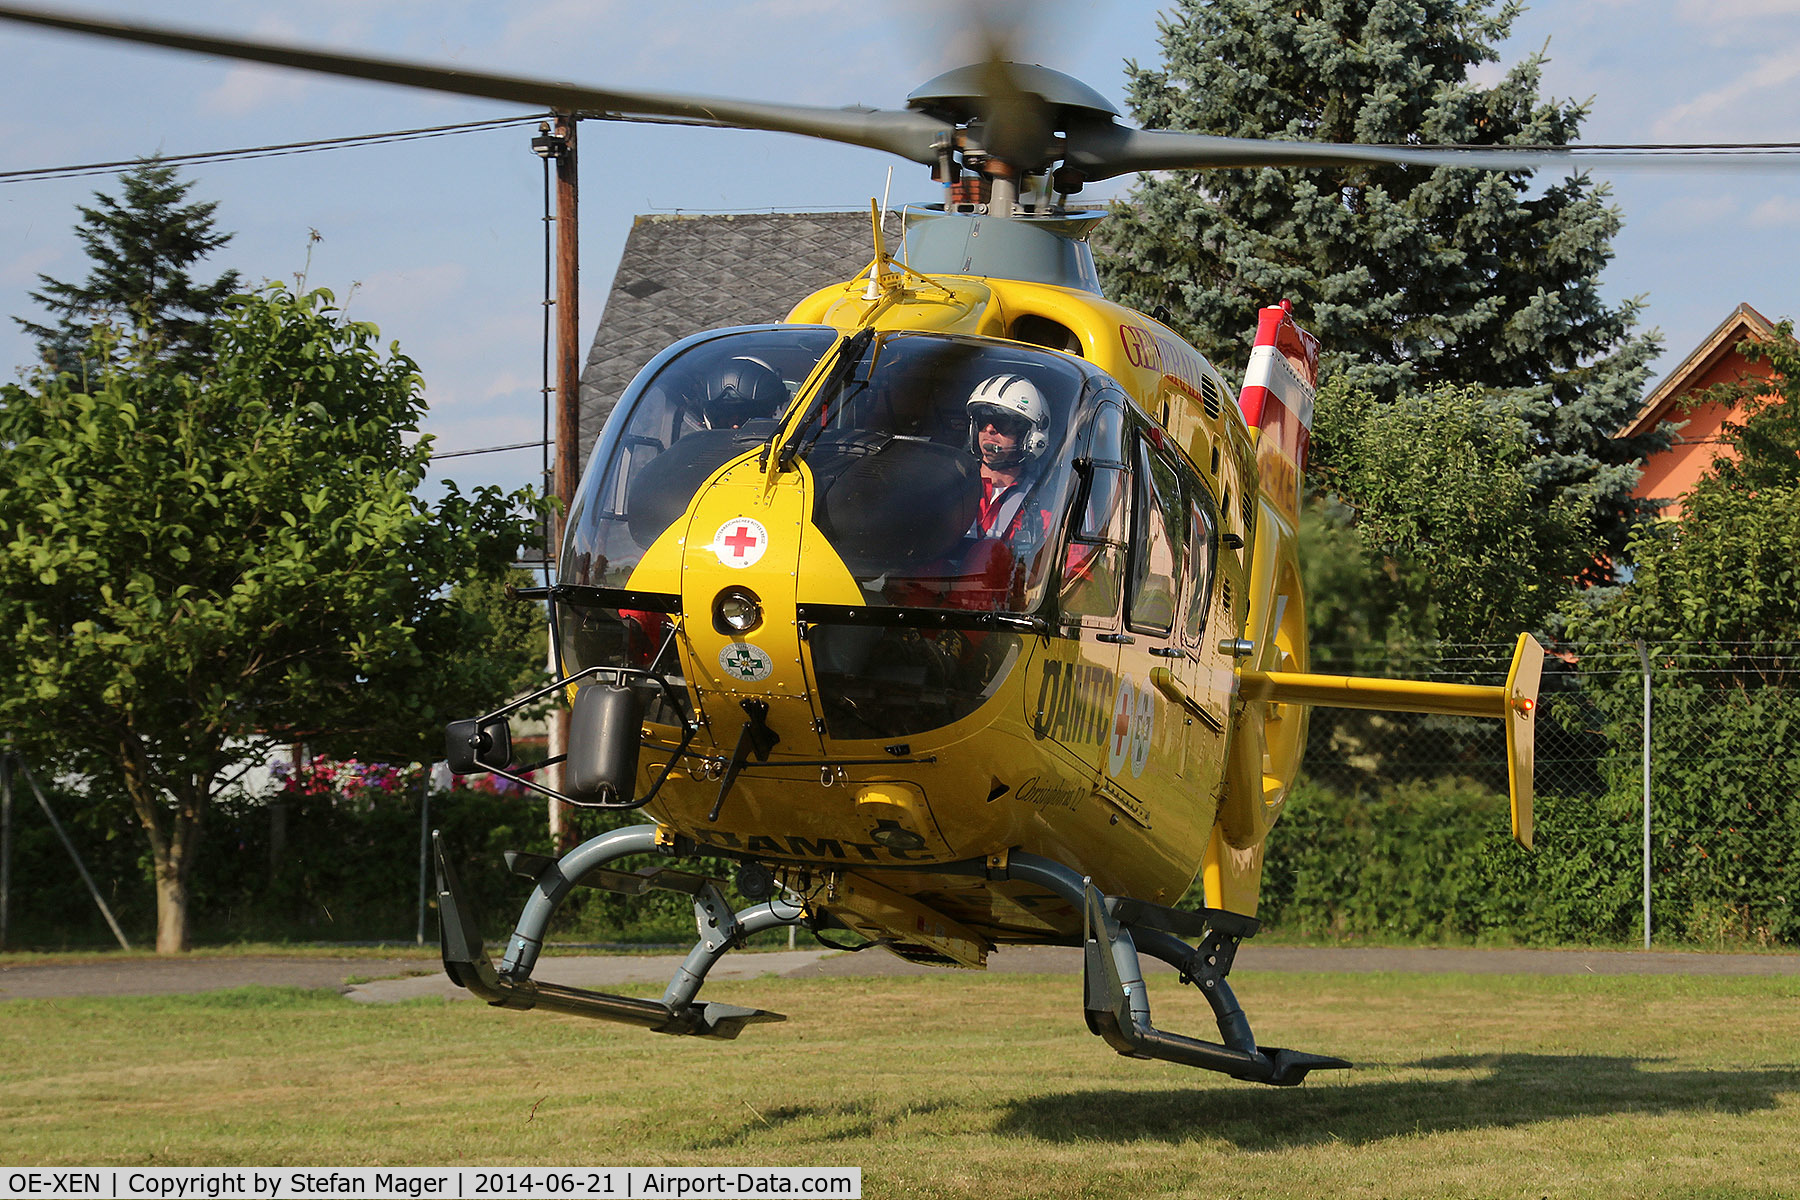 OE-XEN, Eurocopter EC-135T-2 C/N 0199, Taking off for rescue mission